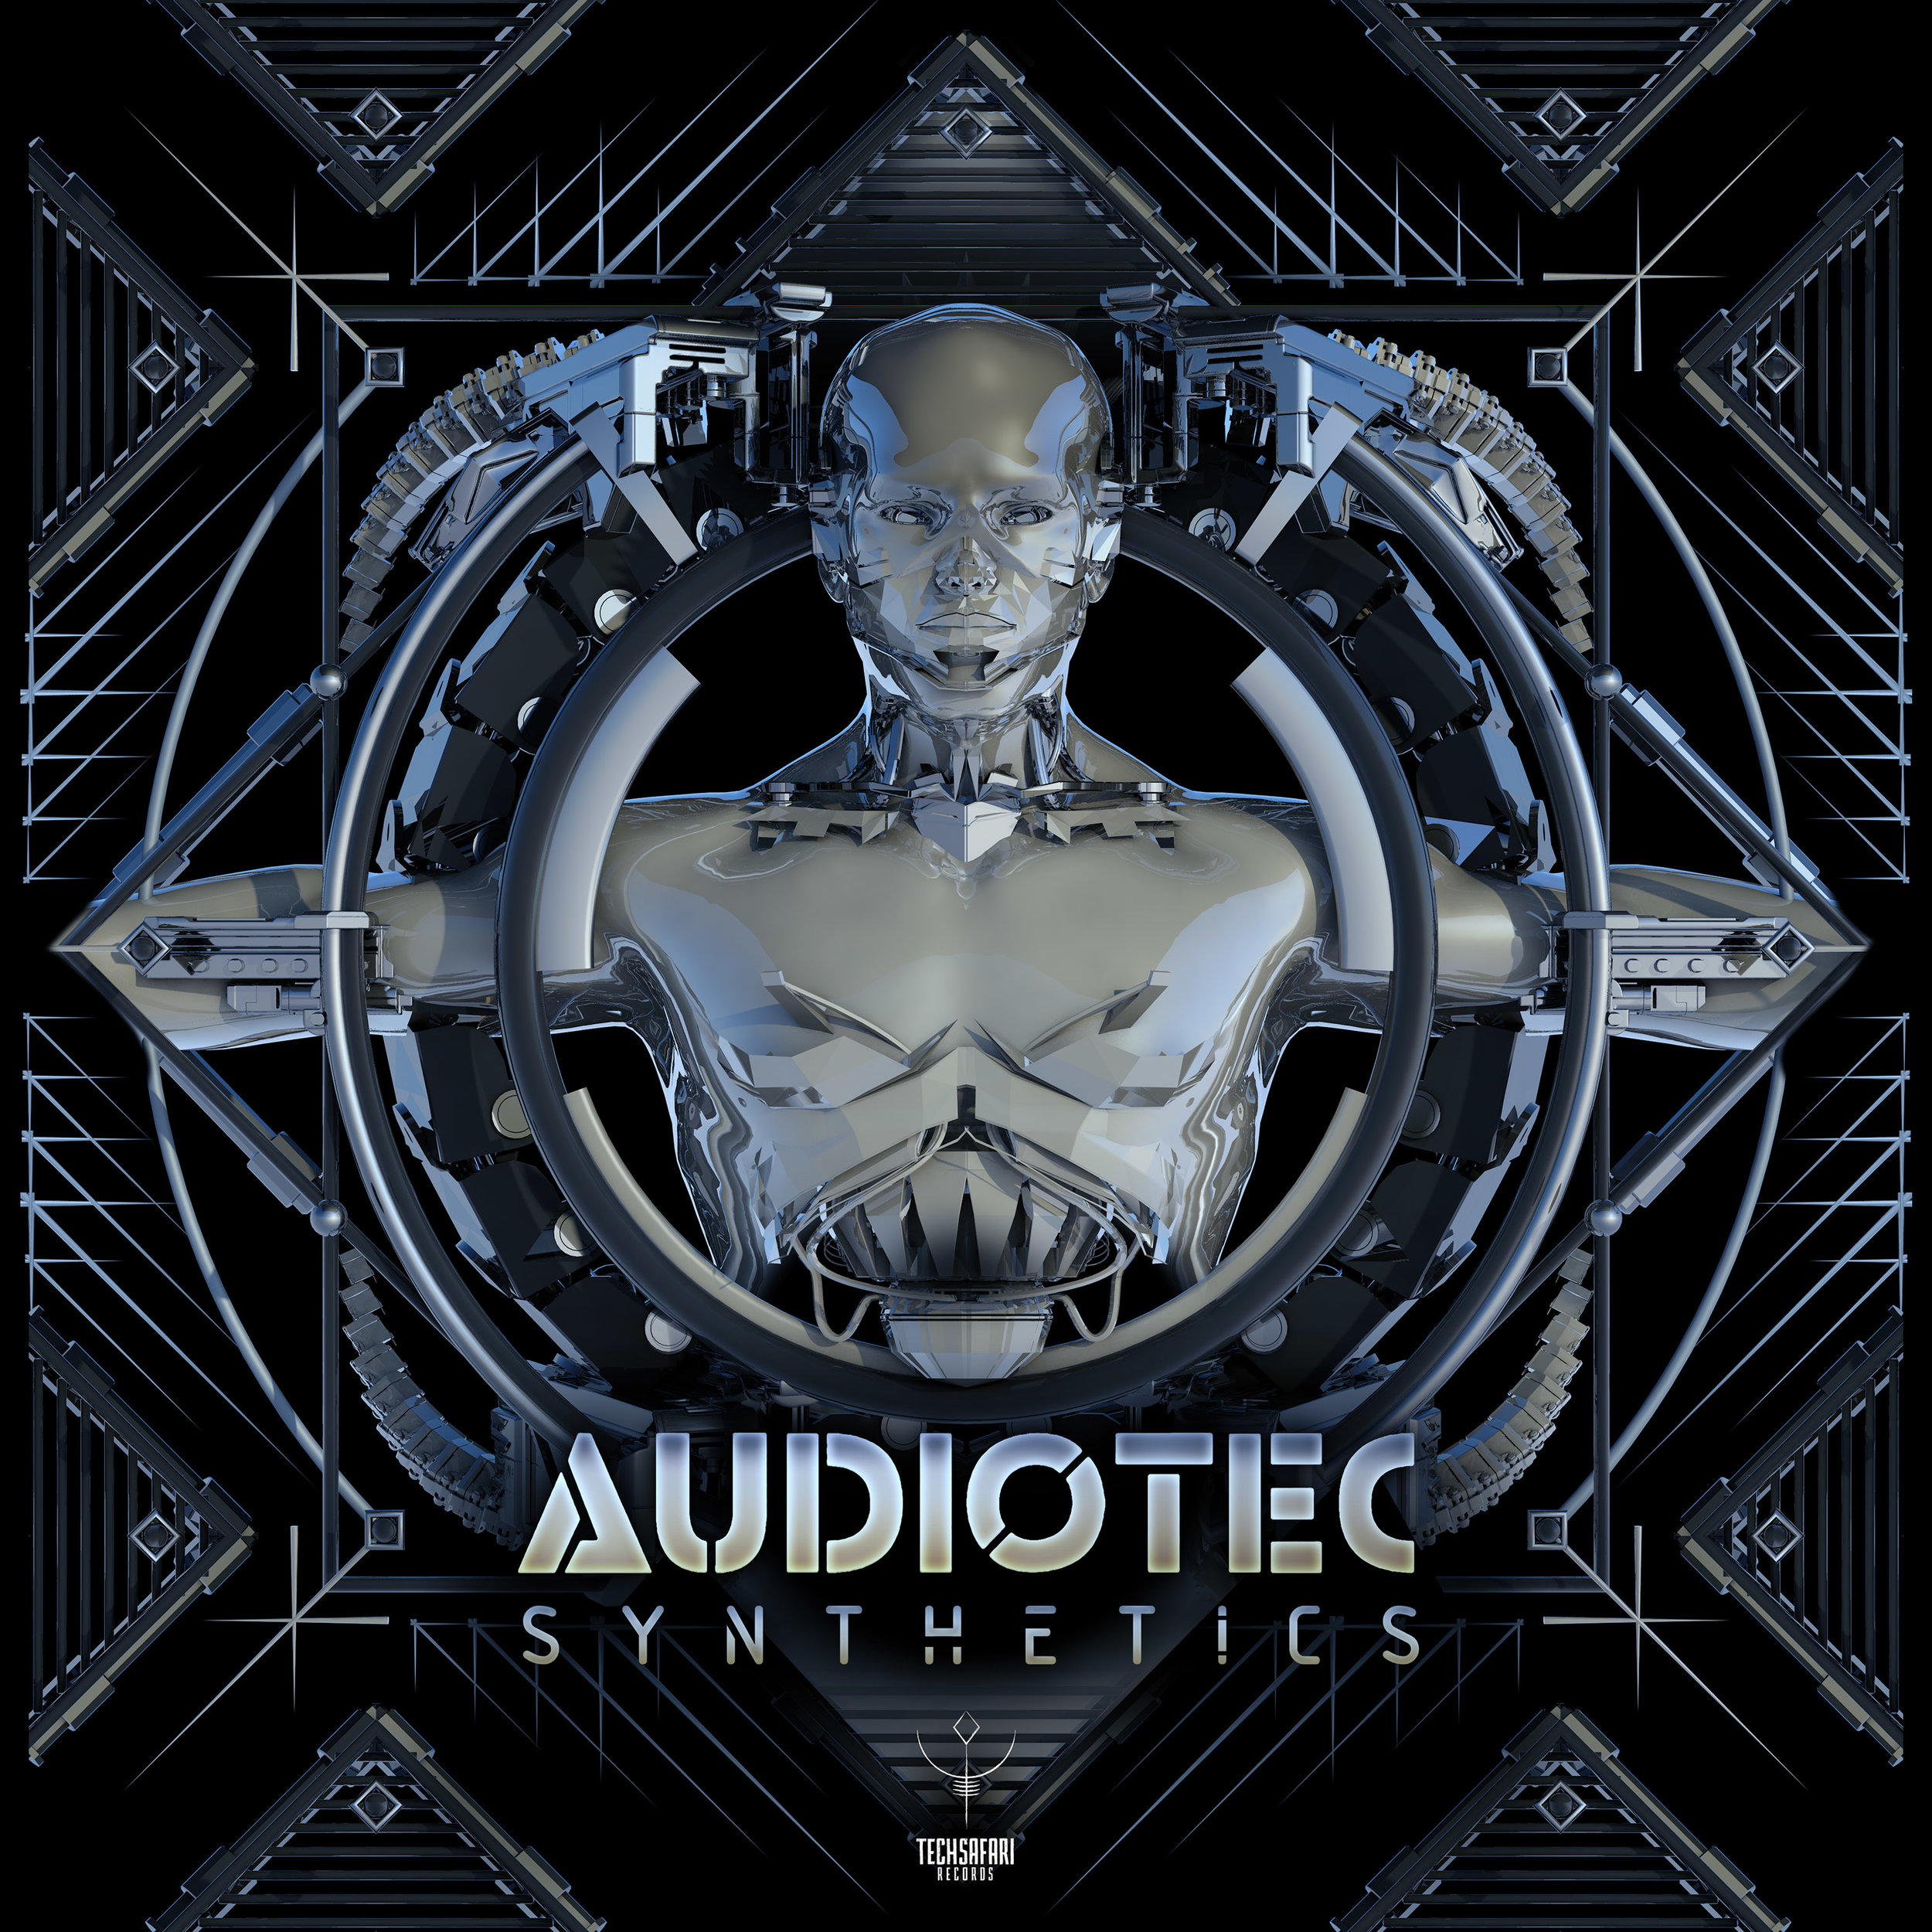 Audiotec - Synthetics.jpg